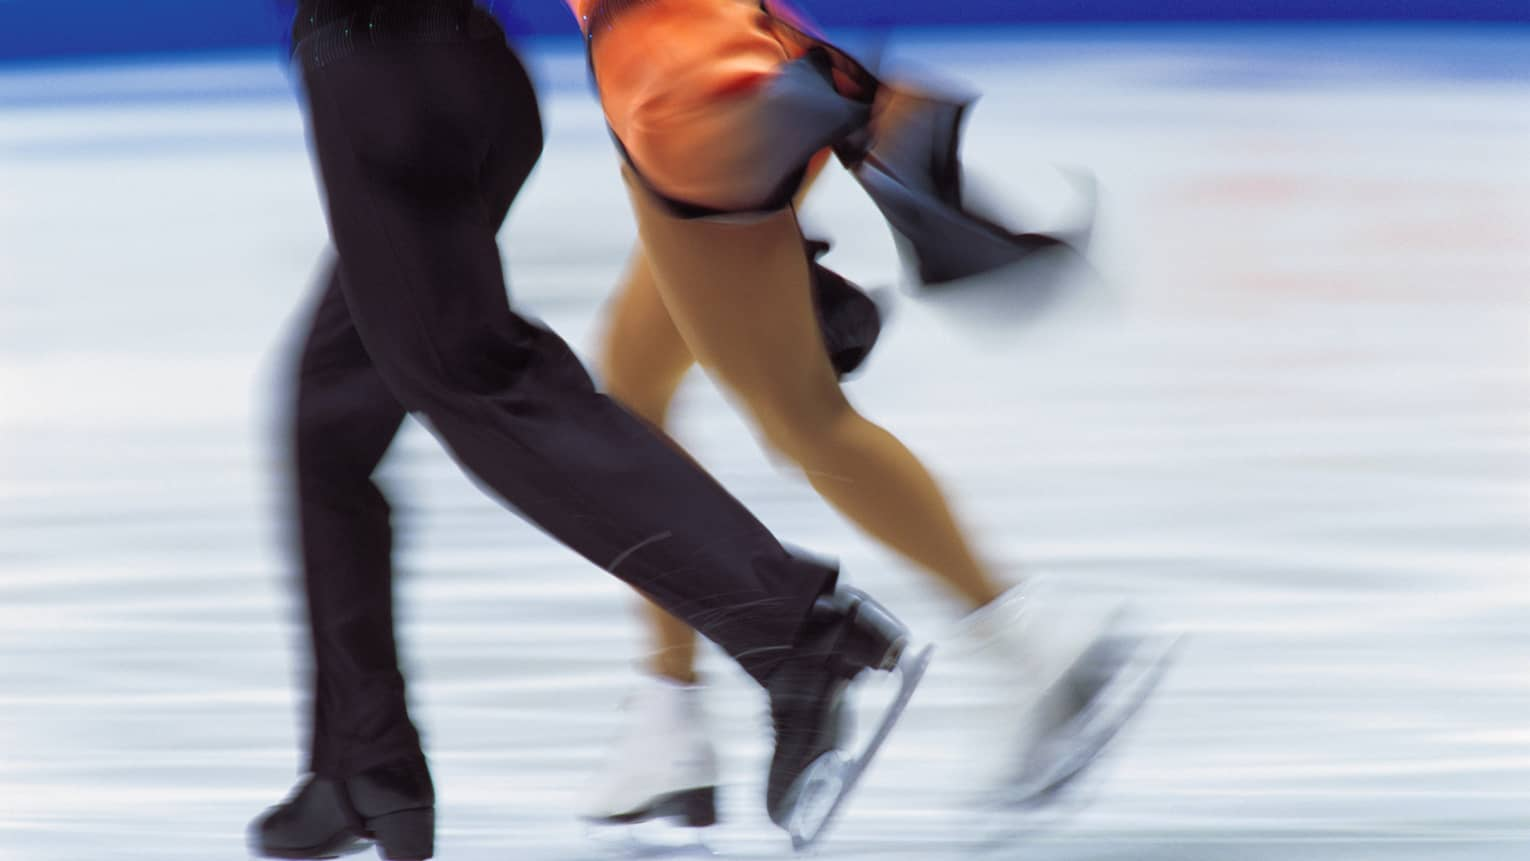 Lower view of man and woman in figure skates, blurry as they move quickly across ice